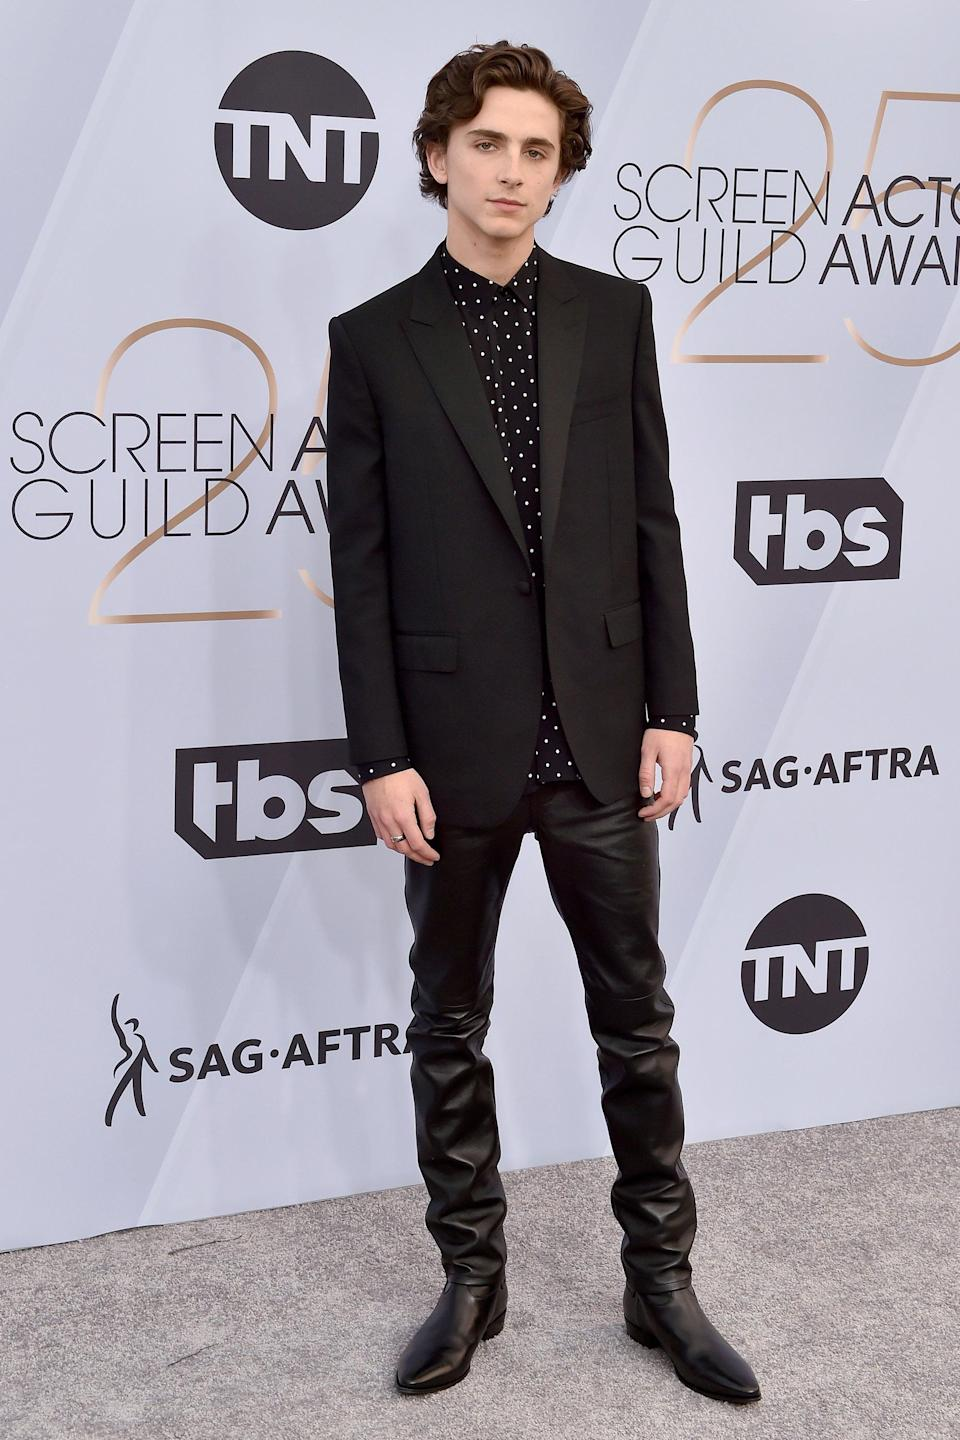 "<h2>Celine</h2>Of course Hedi Slimane put Timothée Chalamet in leather pants for the SAG Awards. <span class=""copyright"">Photo: Axelle/Bauer-Griffin/FilmMagic.</span>"